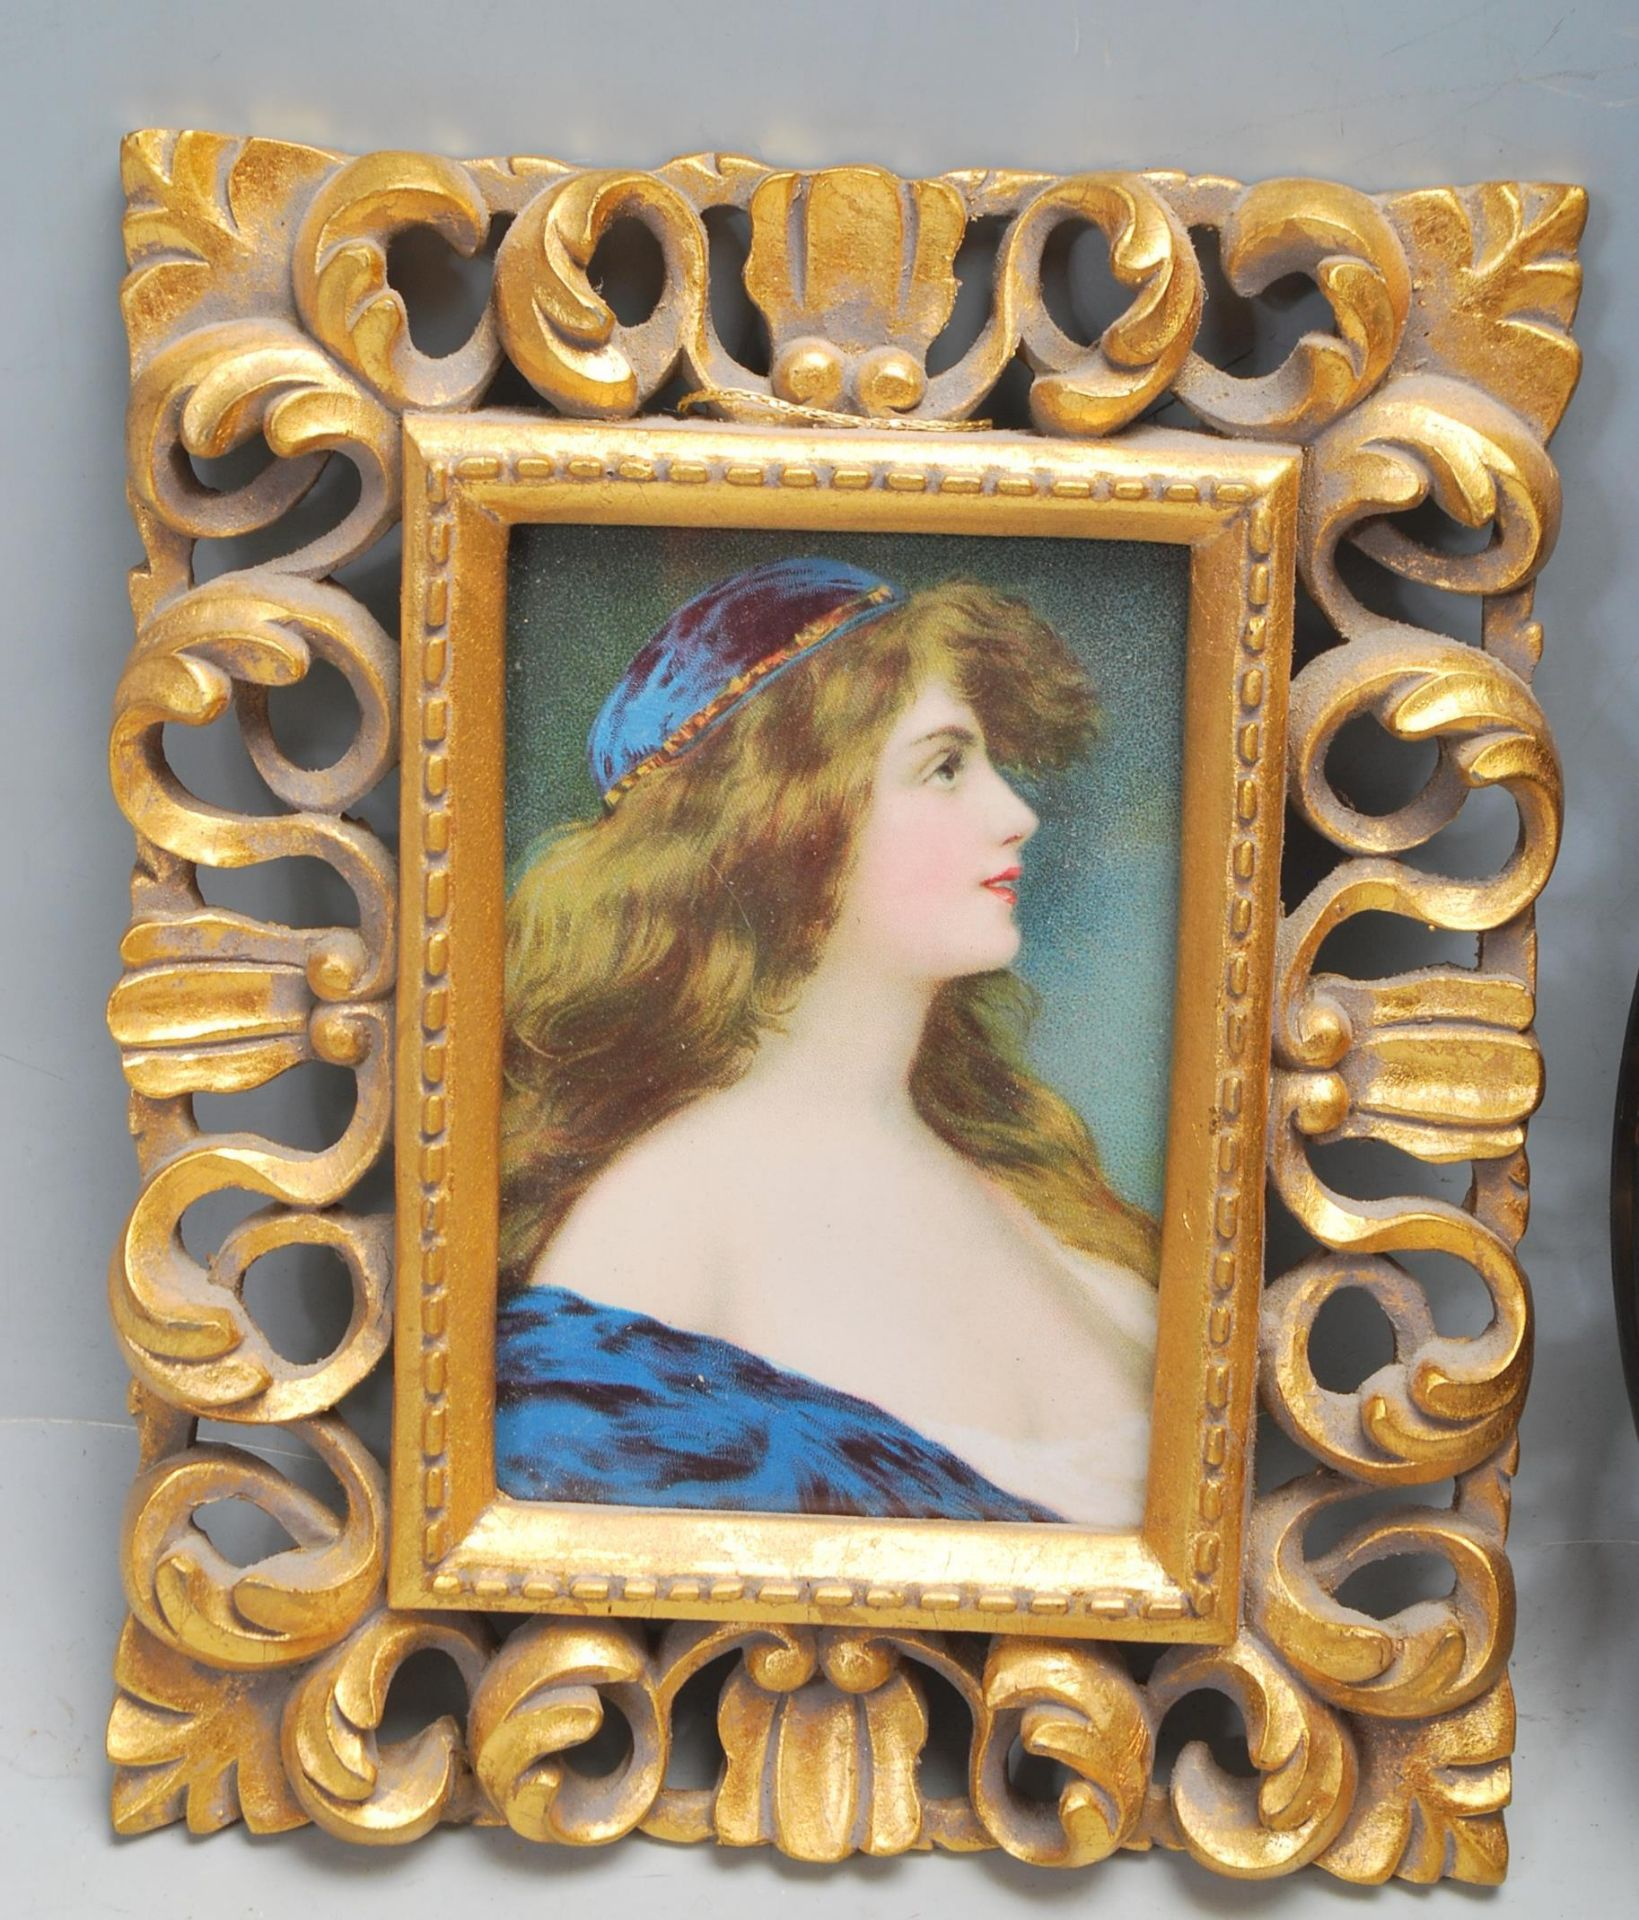 GROUP OF SIX ANTIQUE AND VINTAGE MINIATURE PORTRAITS - TWO HAND PAINTED - Image 2 of 8